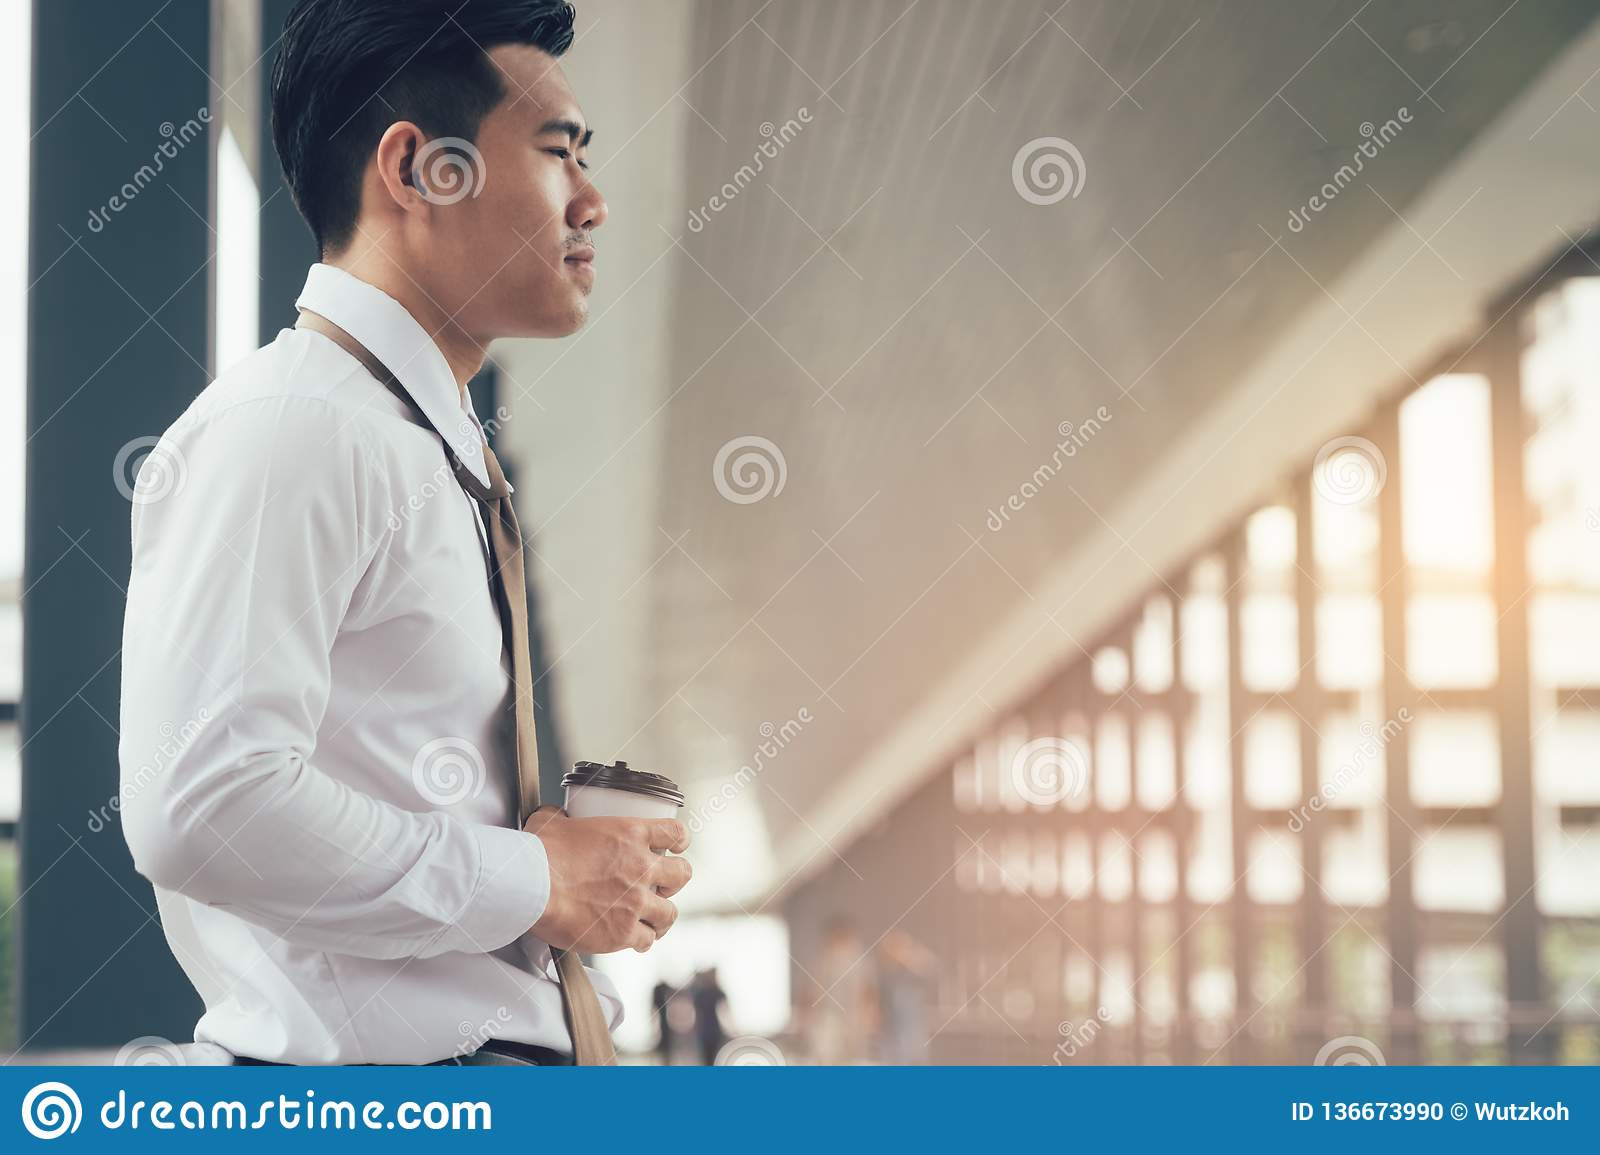 Businessman standing at building walkway company with hope concept